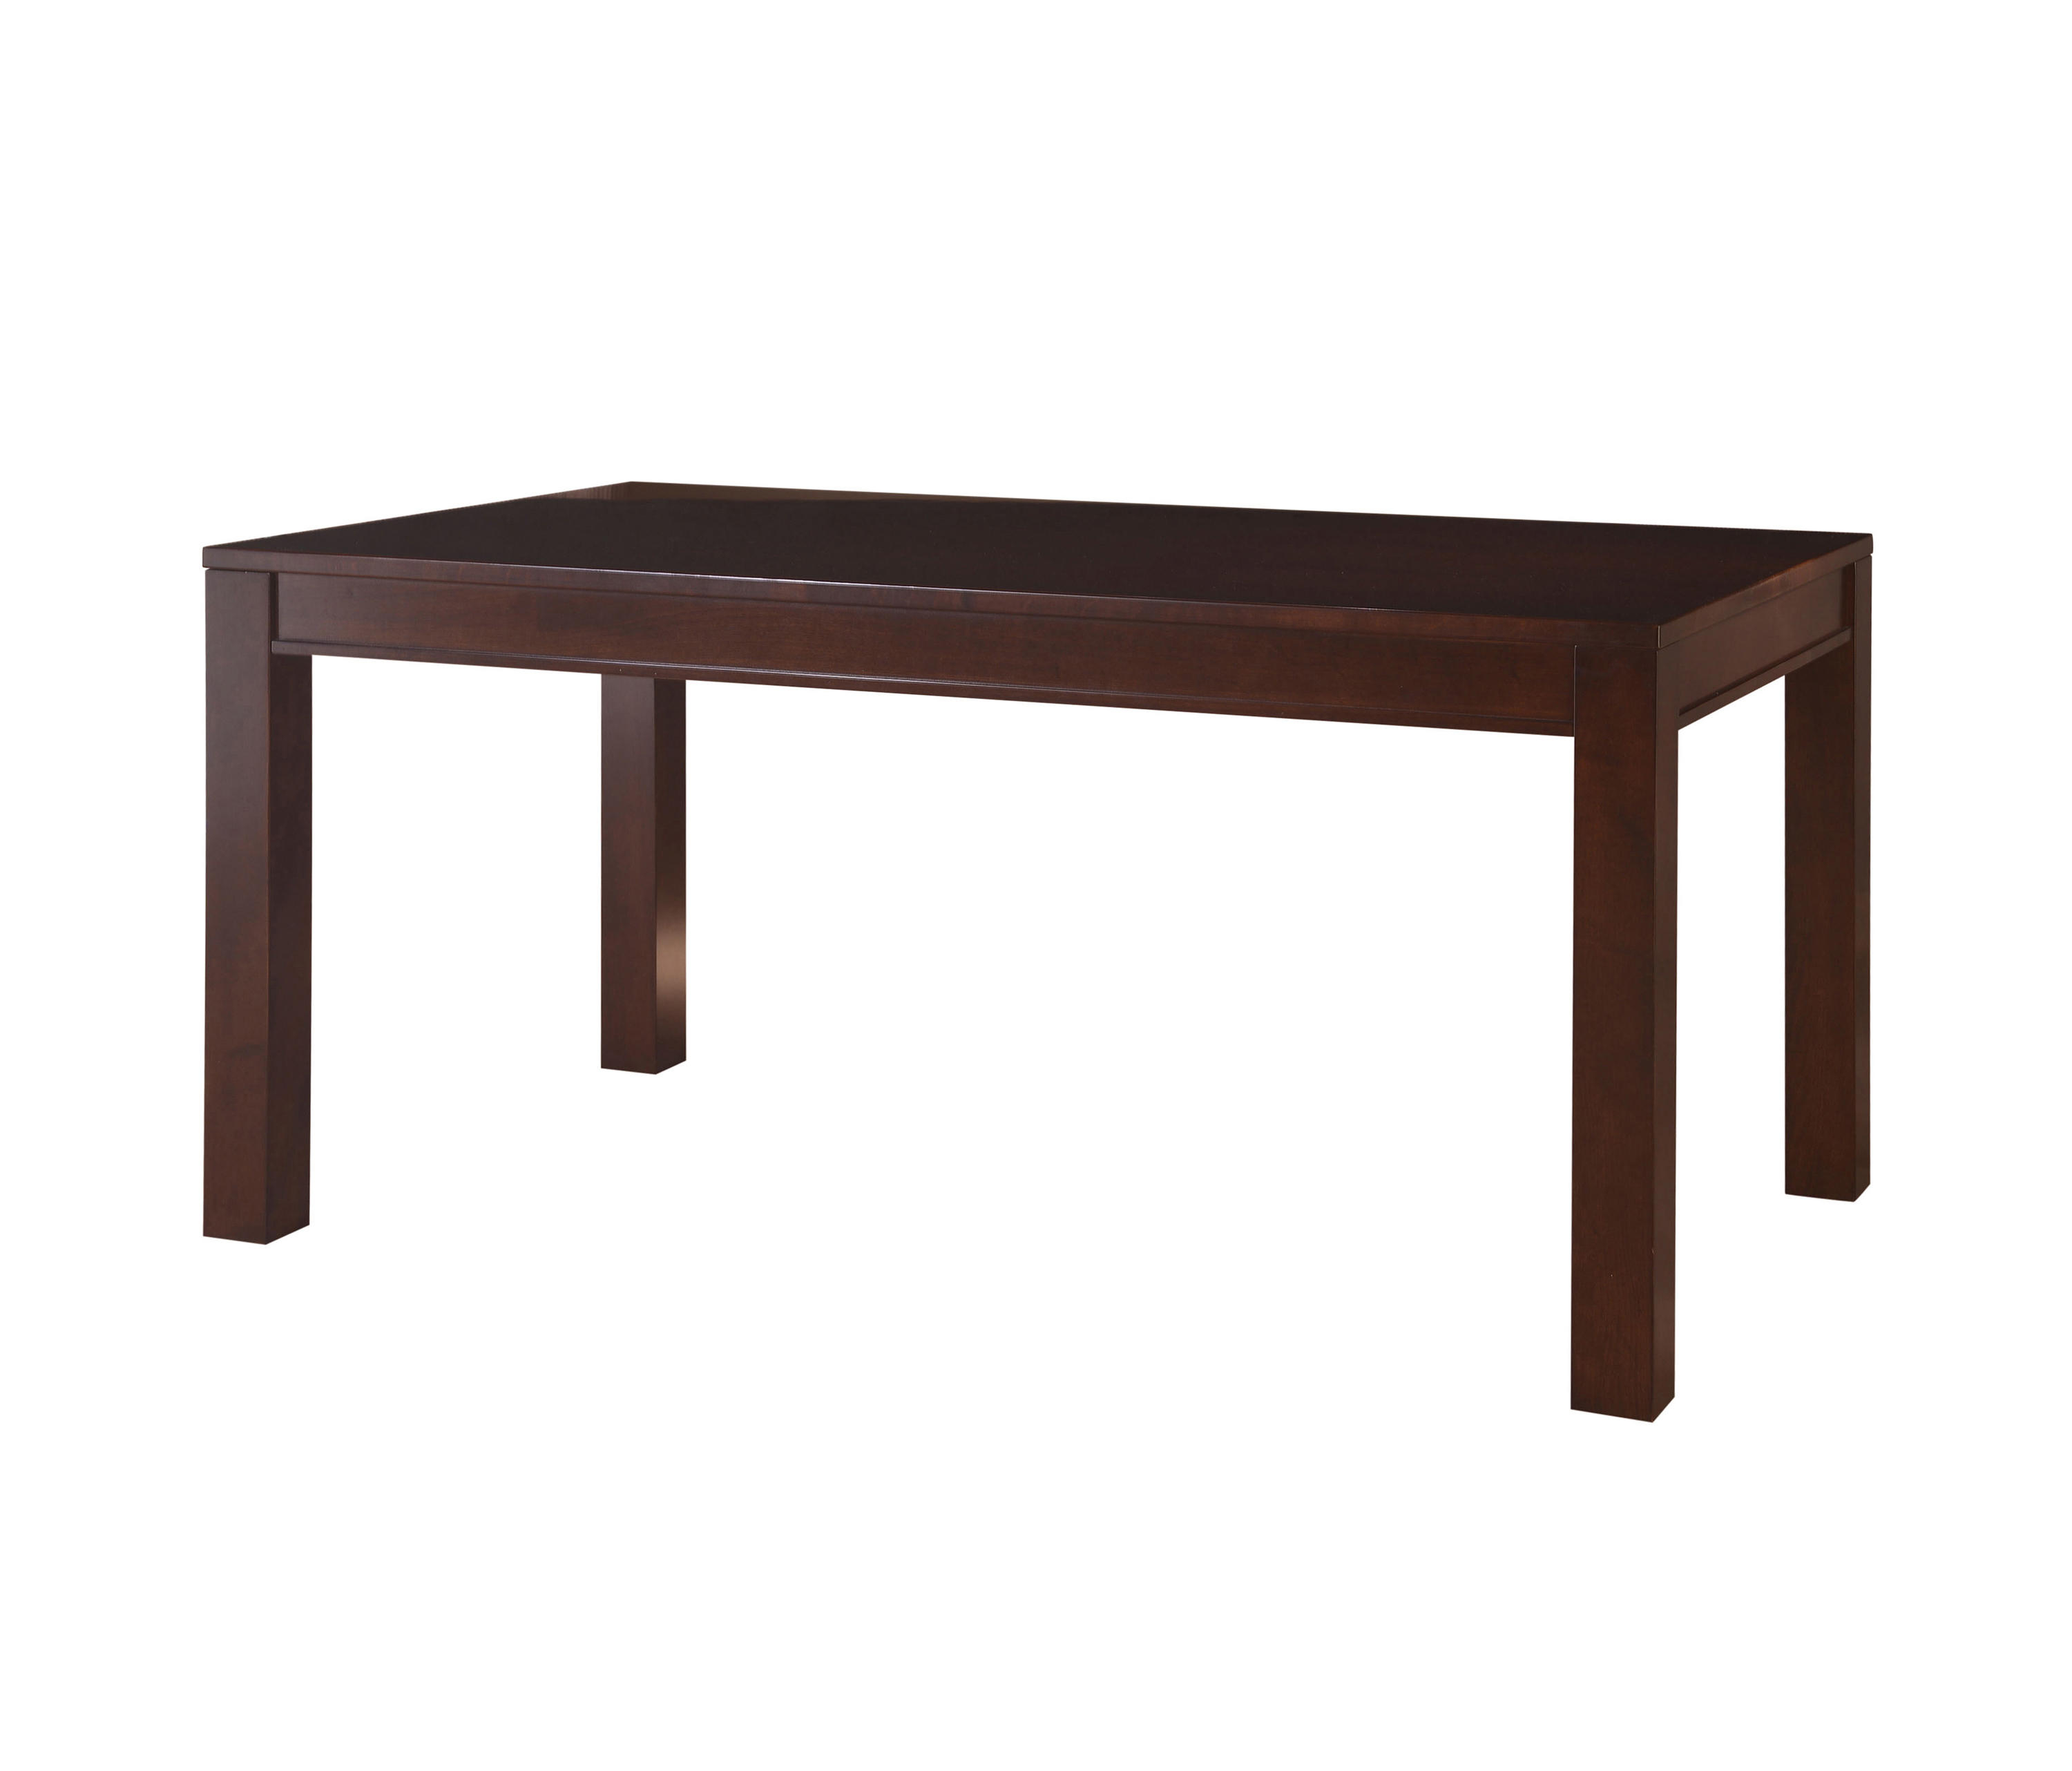 Adam Coffee Tables In Best And Newest Varia Adam Dining Table Selva Timeless – Dining Tables From Selva (View 16 of 20)